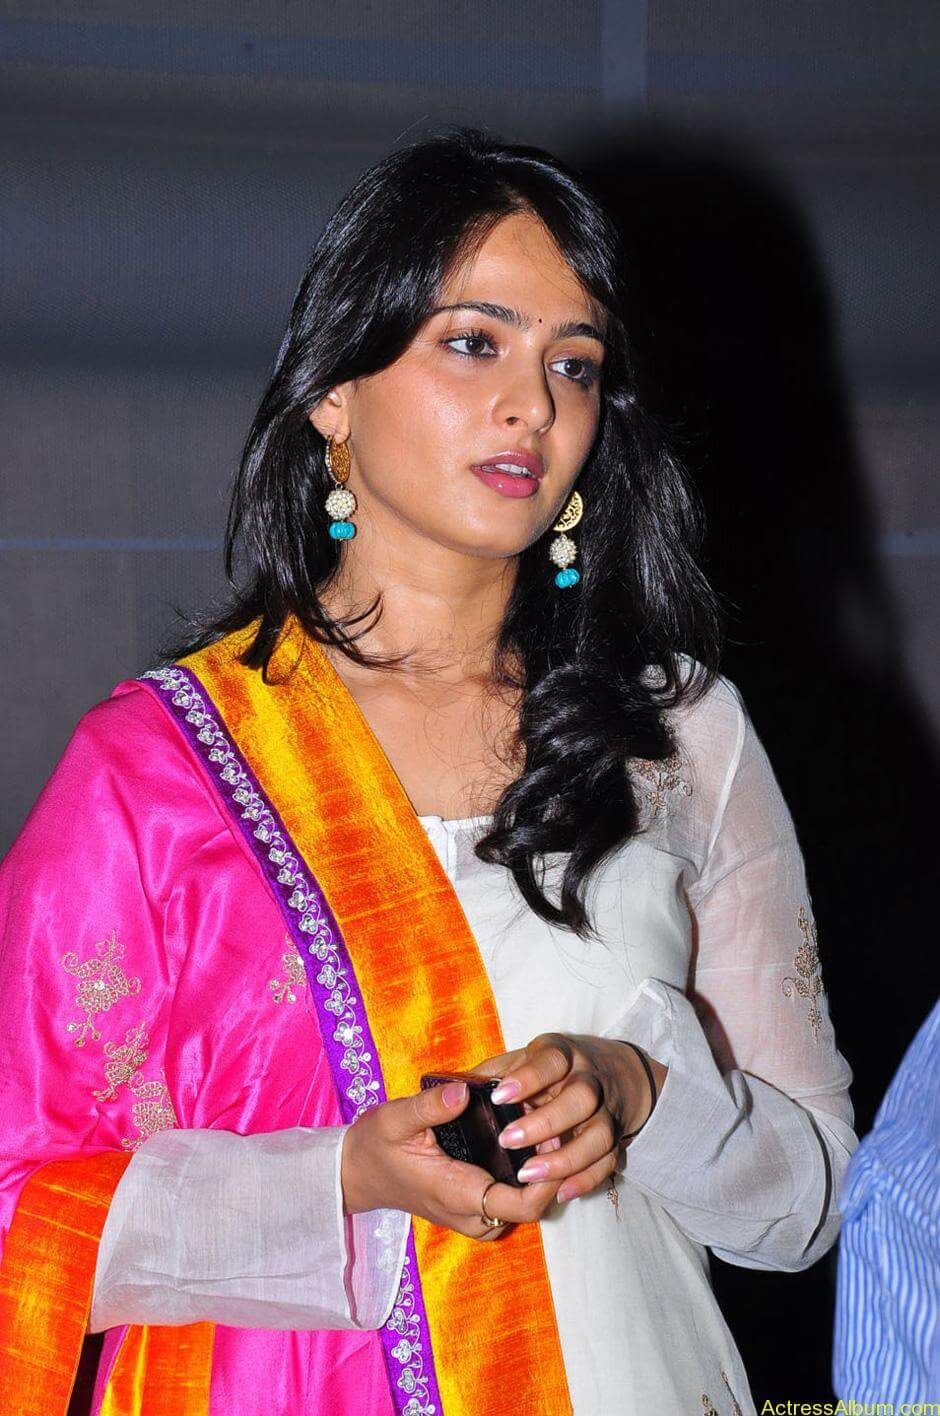 Anushka-Shetty-05-23-2011-Stills-006